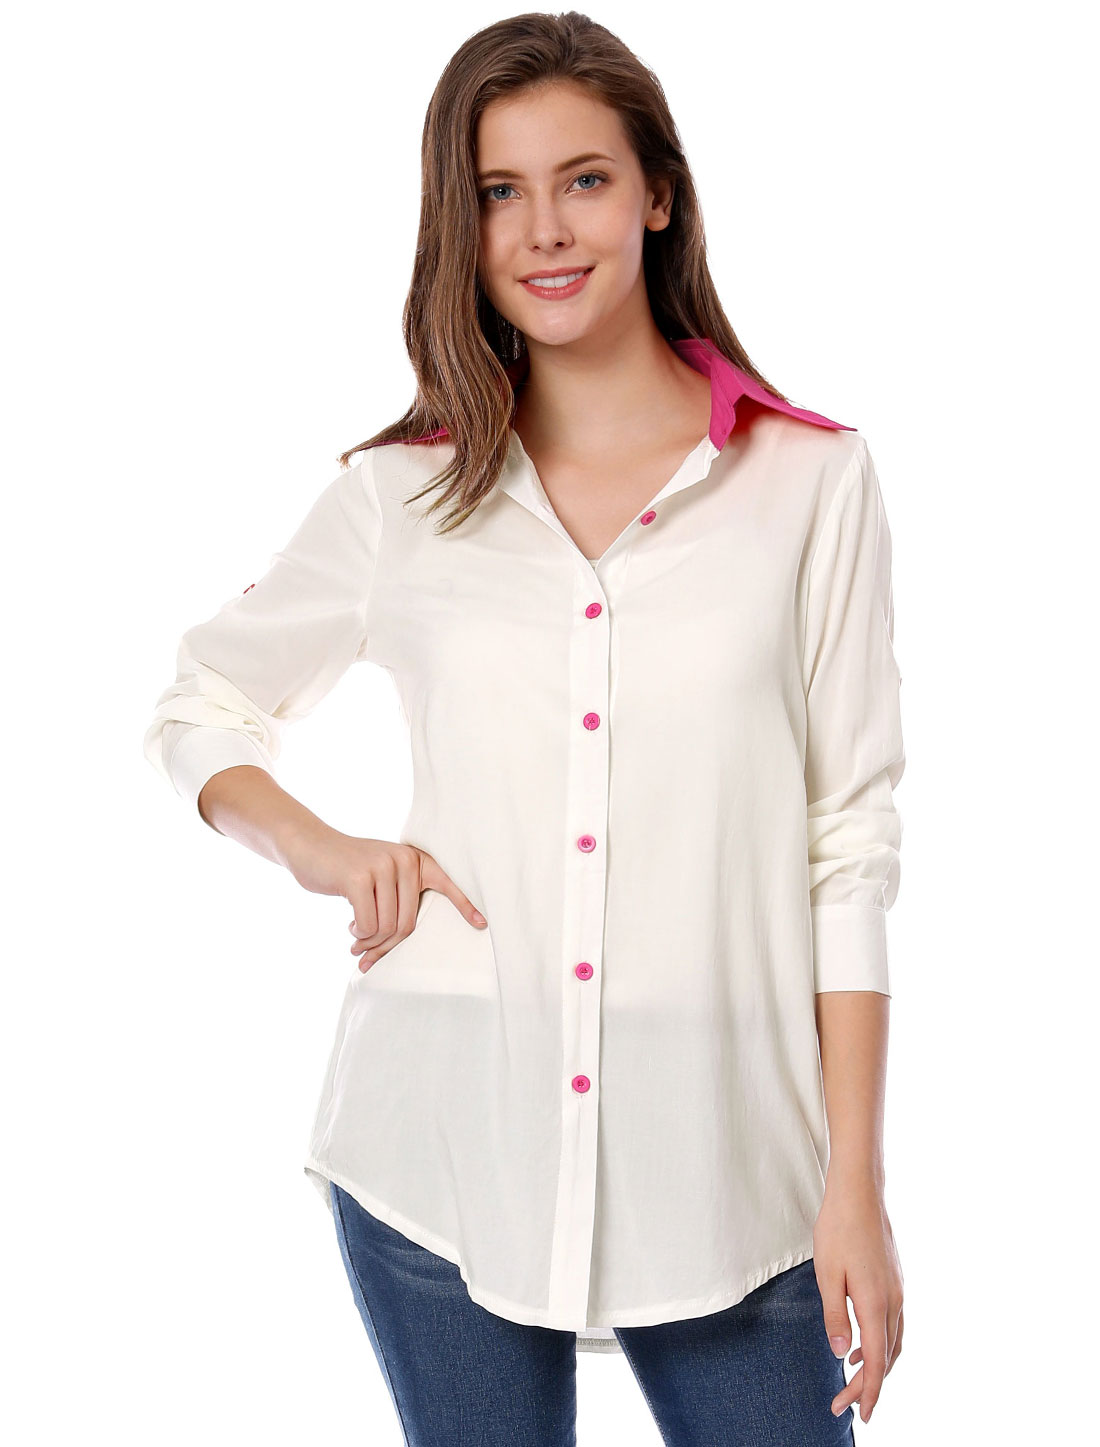 Ladies Chic Fuchsia Point Collar Long-Sleeved White Blouse S